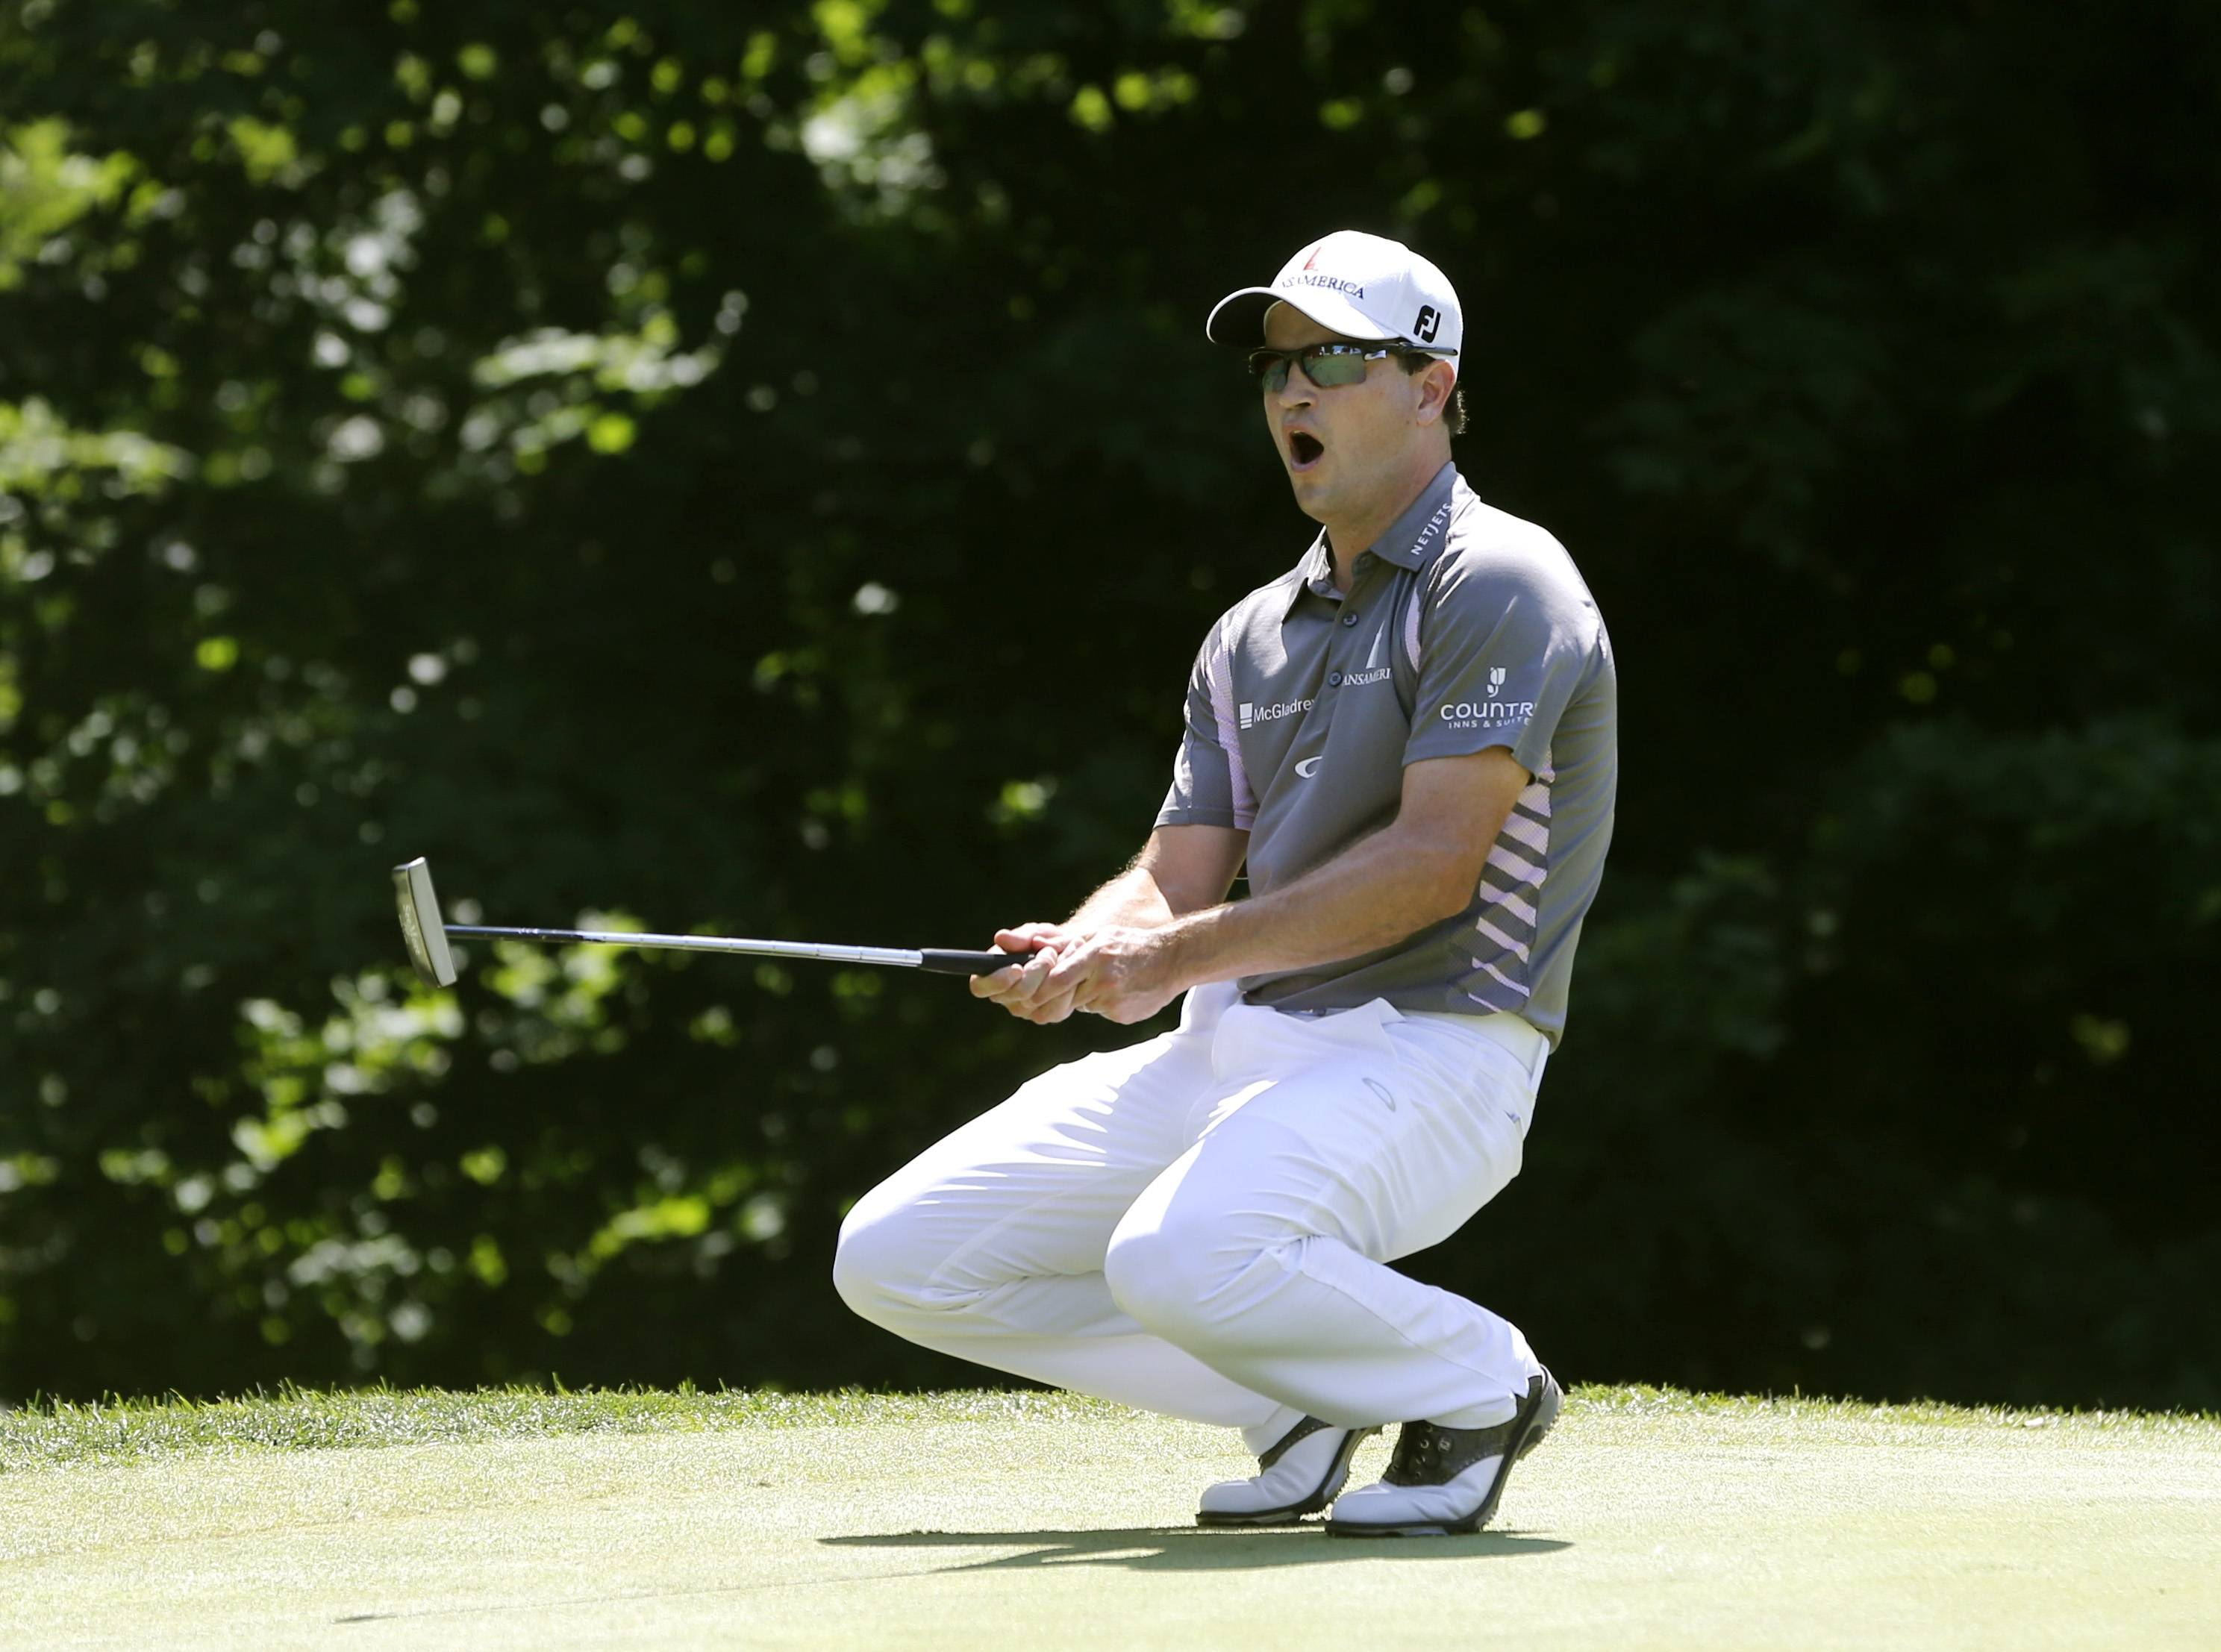 Zach Johnson, shown here after missing a birdie putt during the final round of the John Deere Classic, believes the short game is the key to winning the British Open.